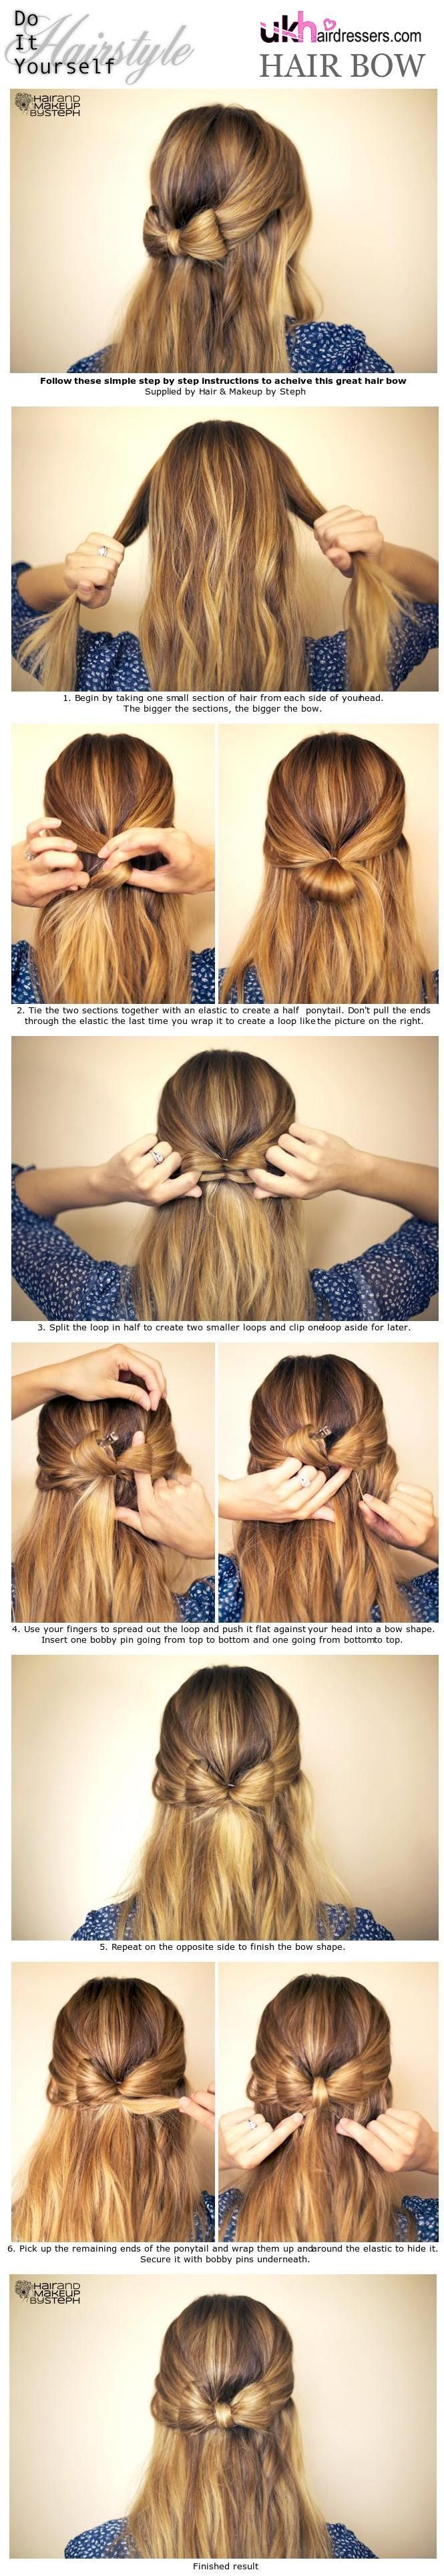 Cute 10-Minute Hairstyles - Hair Bow Hairstyle Tutorial  Frisuren